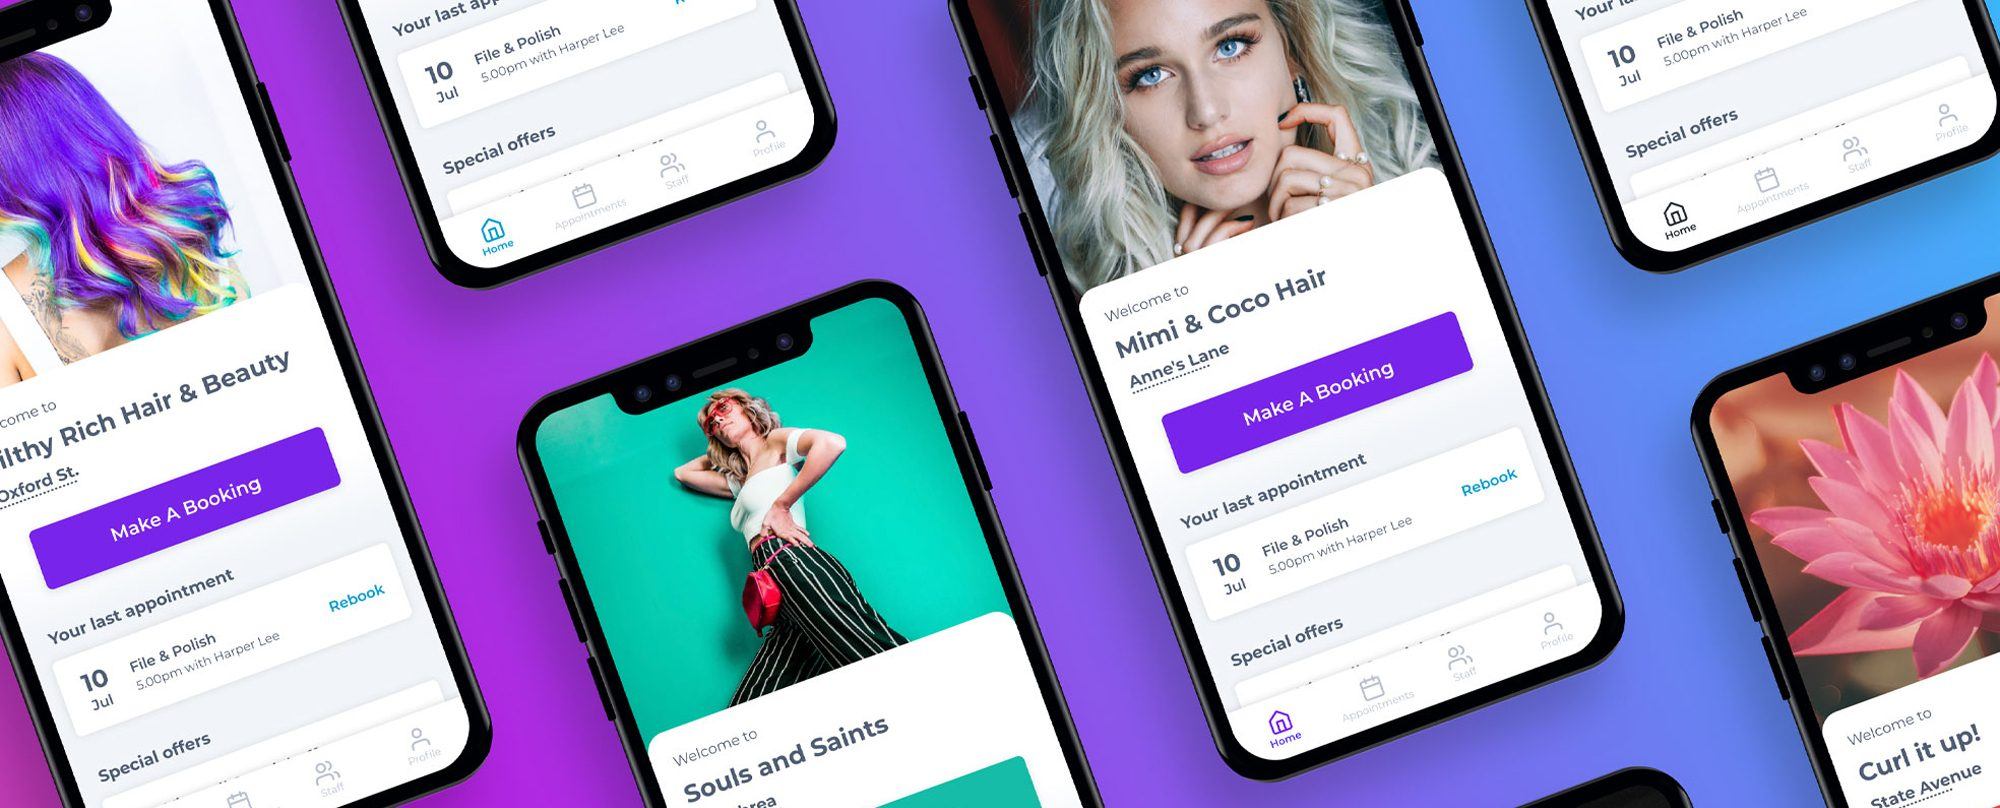 Deliver A Custom Branded Experience With The New Salon Branded Apps